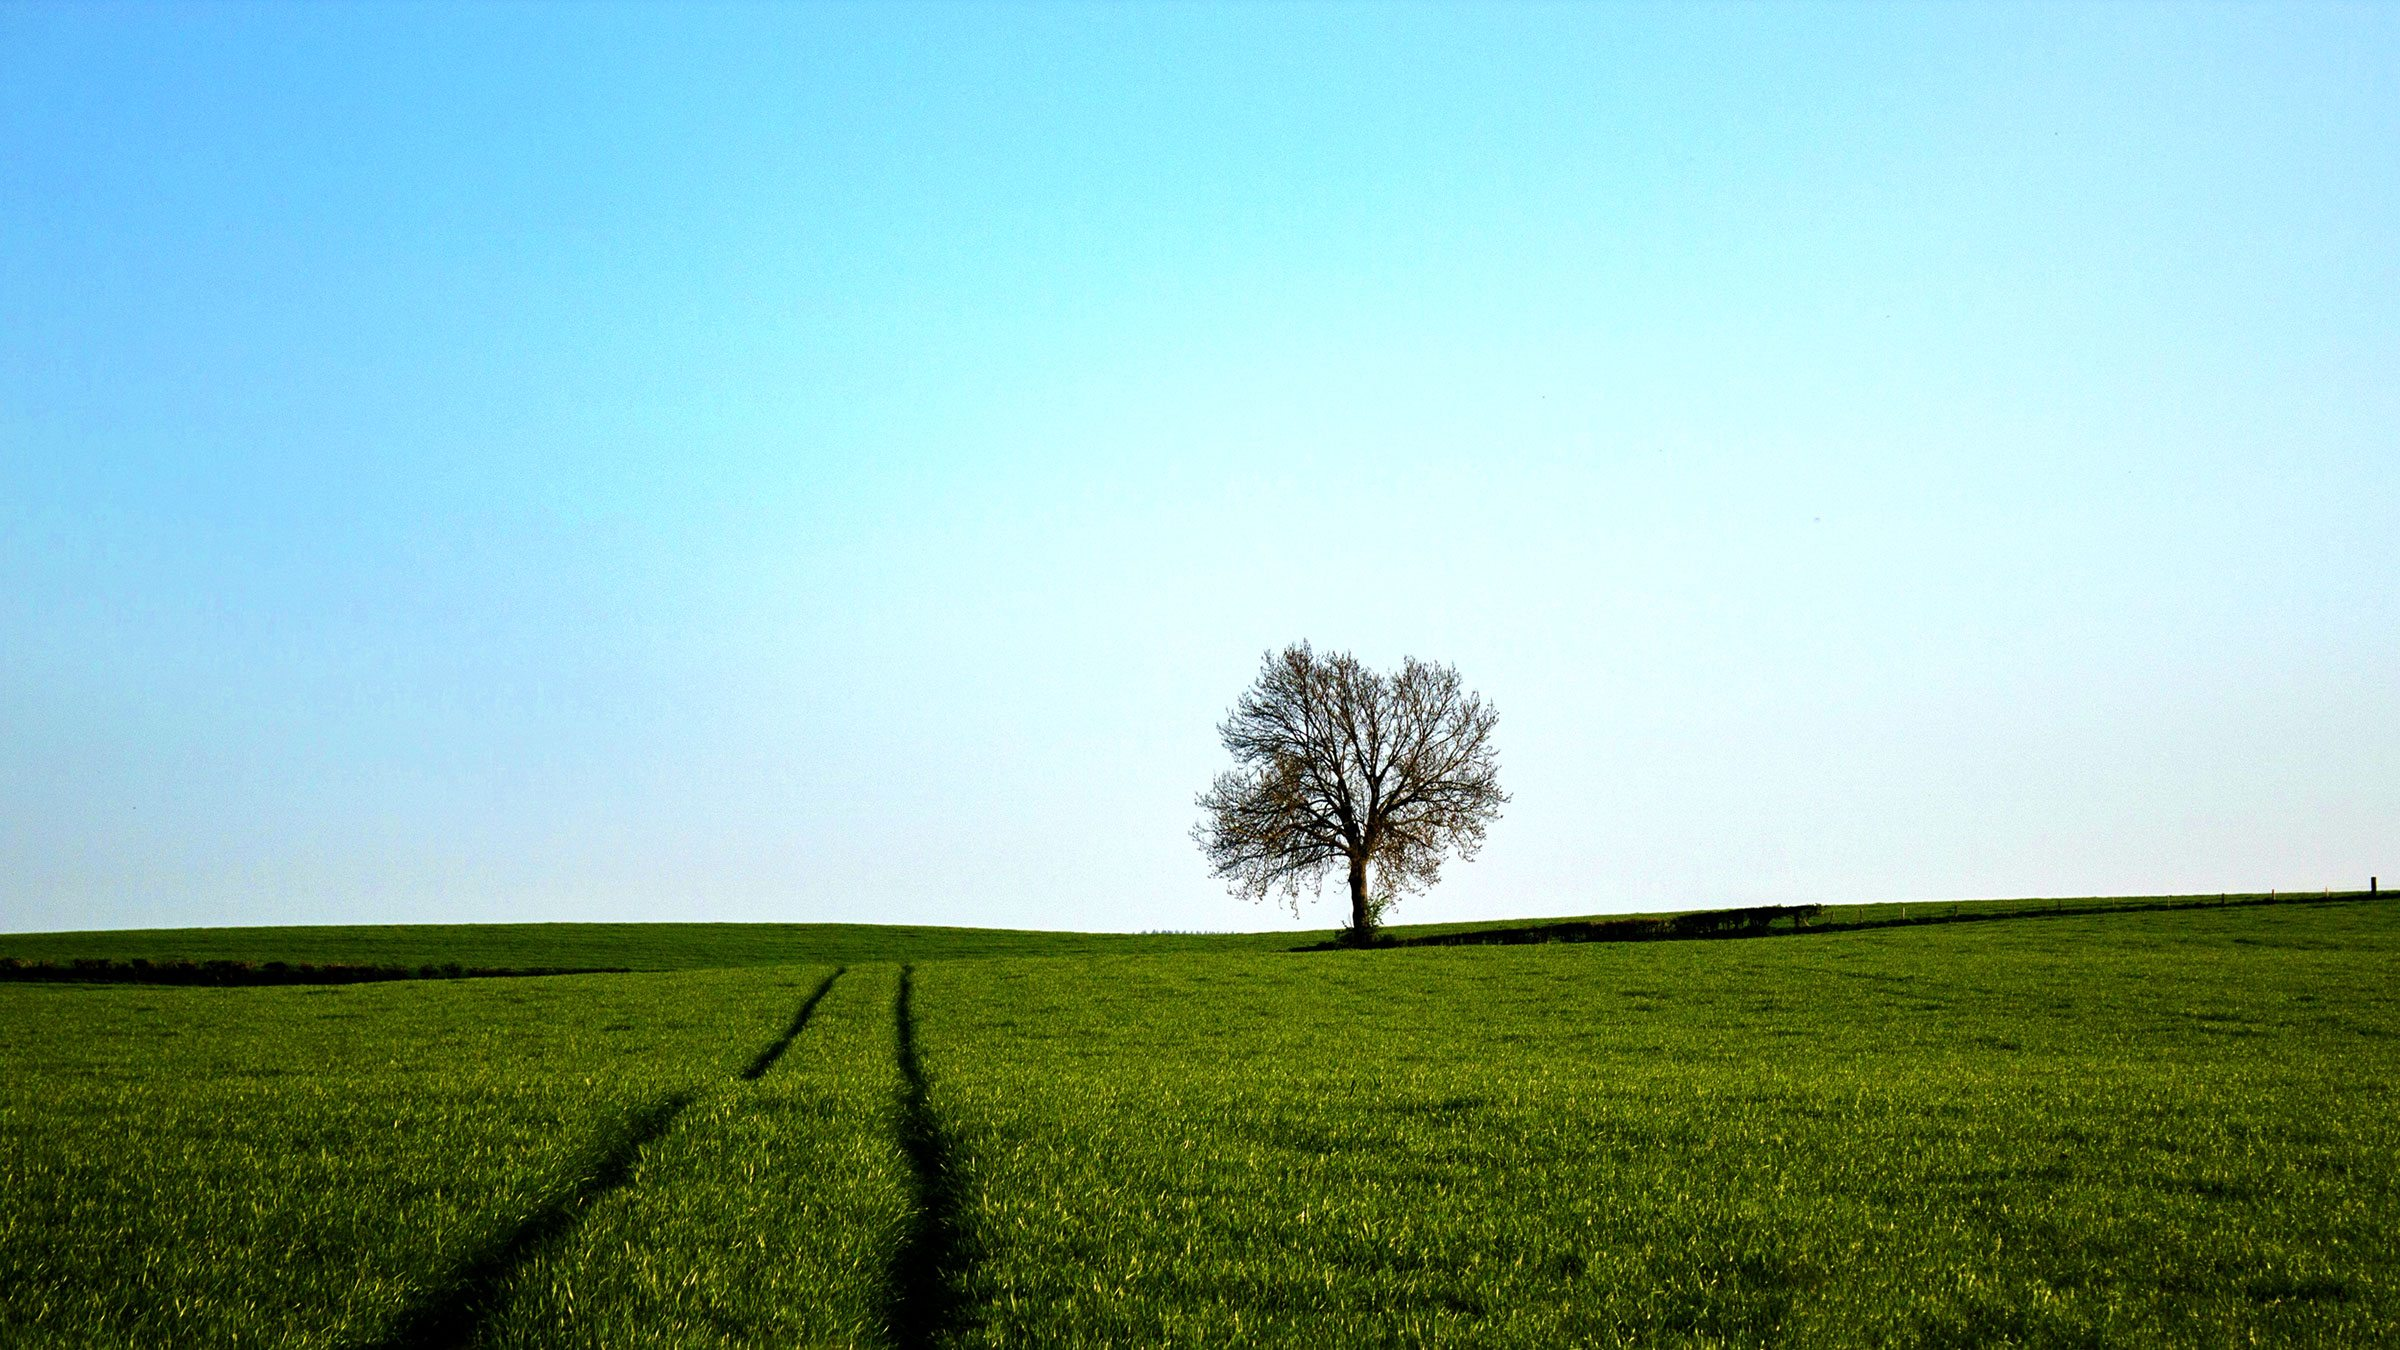 A lone tree stands at the fence row of a field